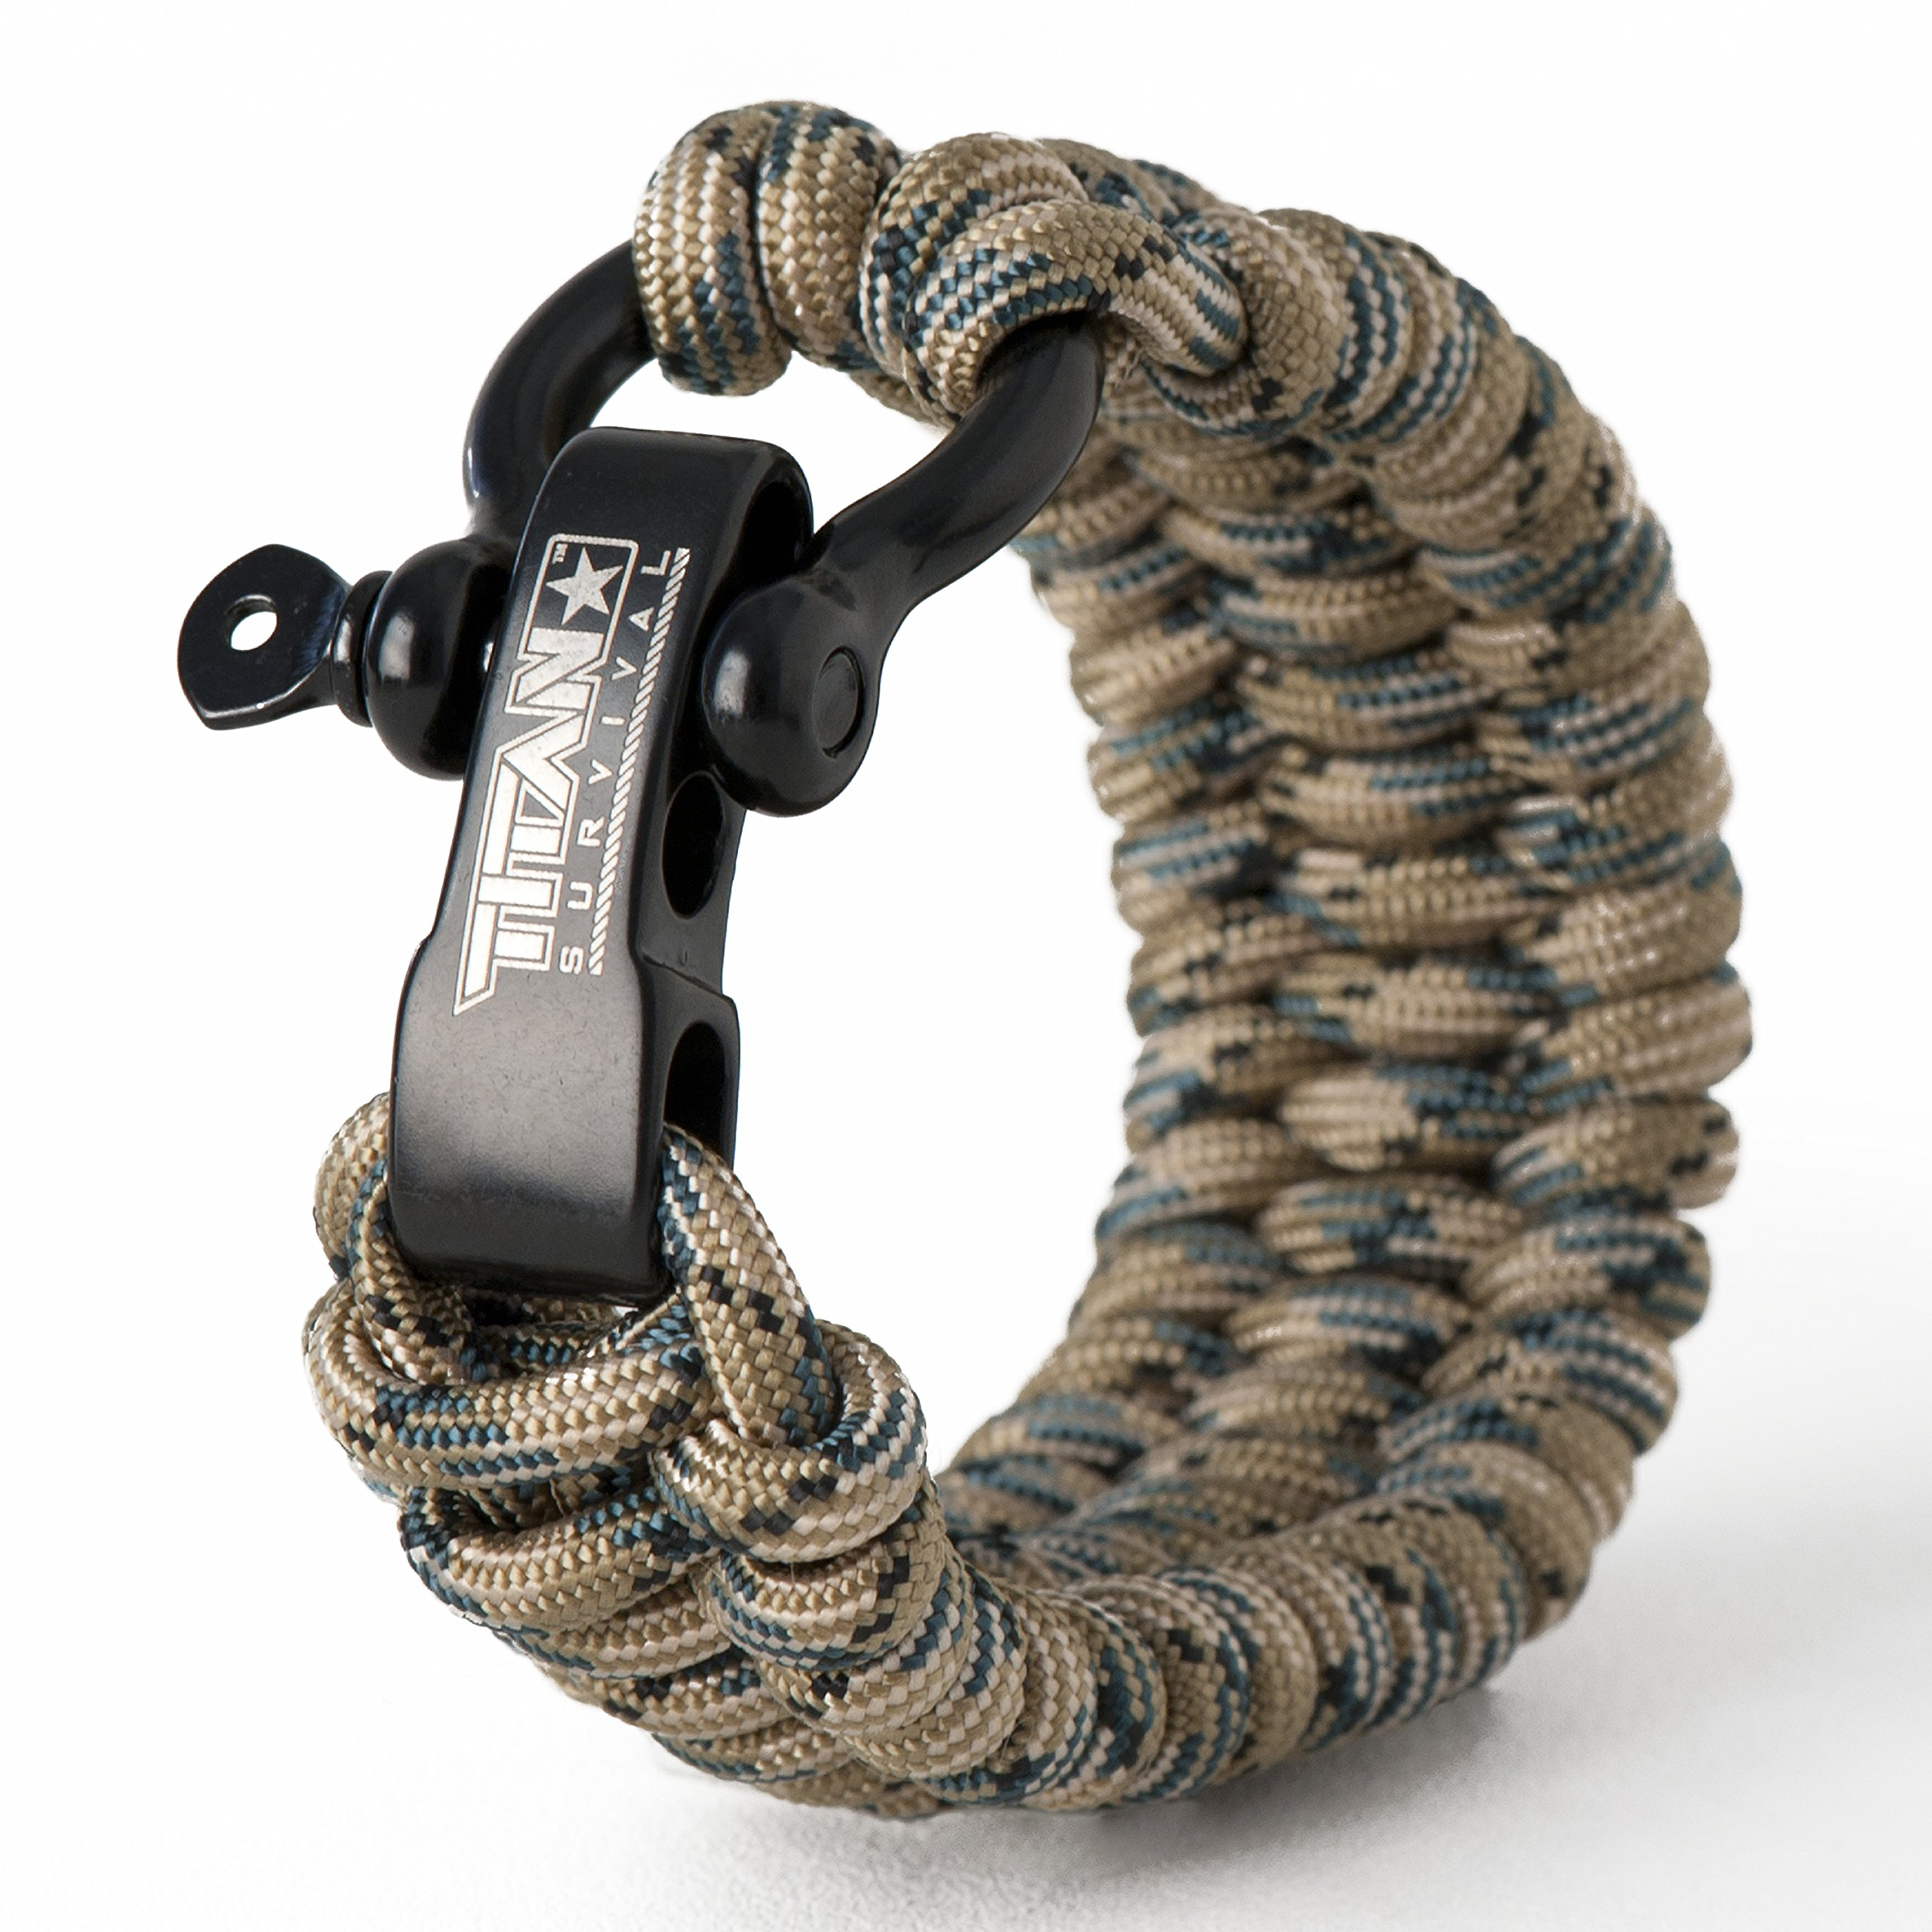 Titan Paracord Survival Bracelet | Forest CAMO | Medium (Fits 7'' - 8'' Wrist) | Made with Authentic Patented SurvivorCord (550 Paracord, Fishing line, Snare Wire, and Waxed Jute for Fires).